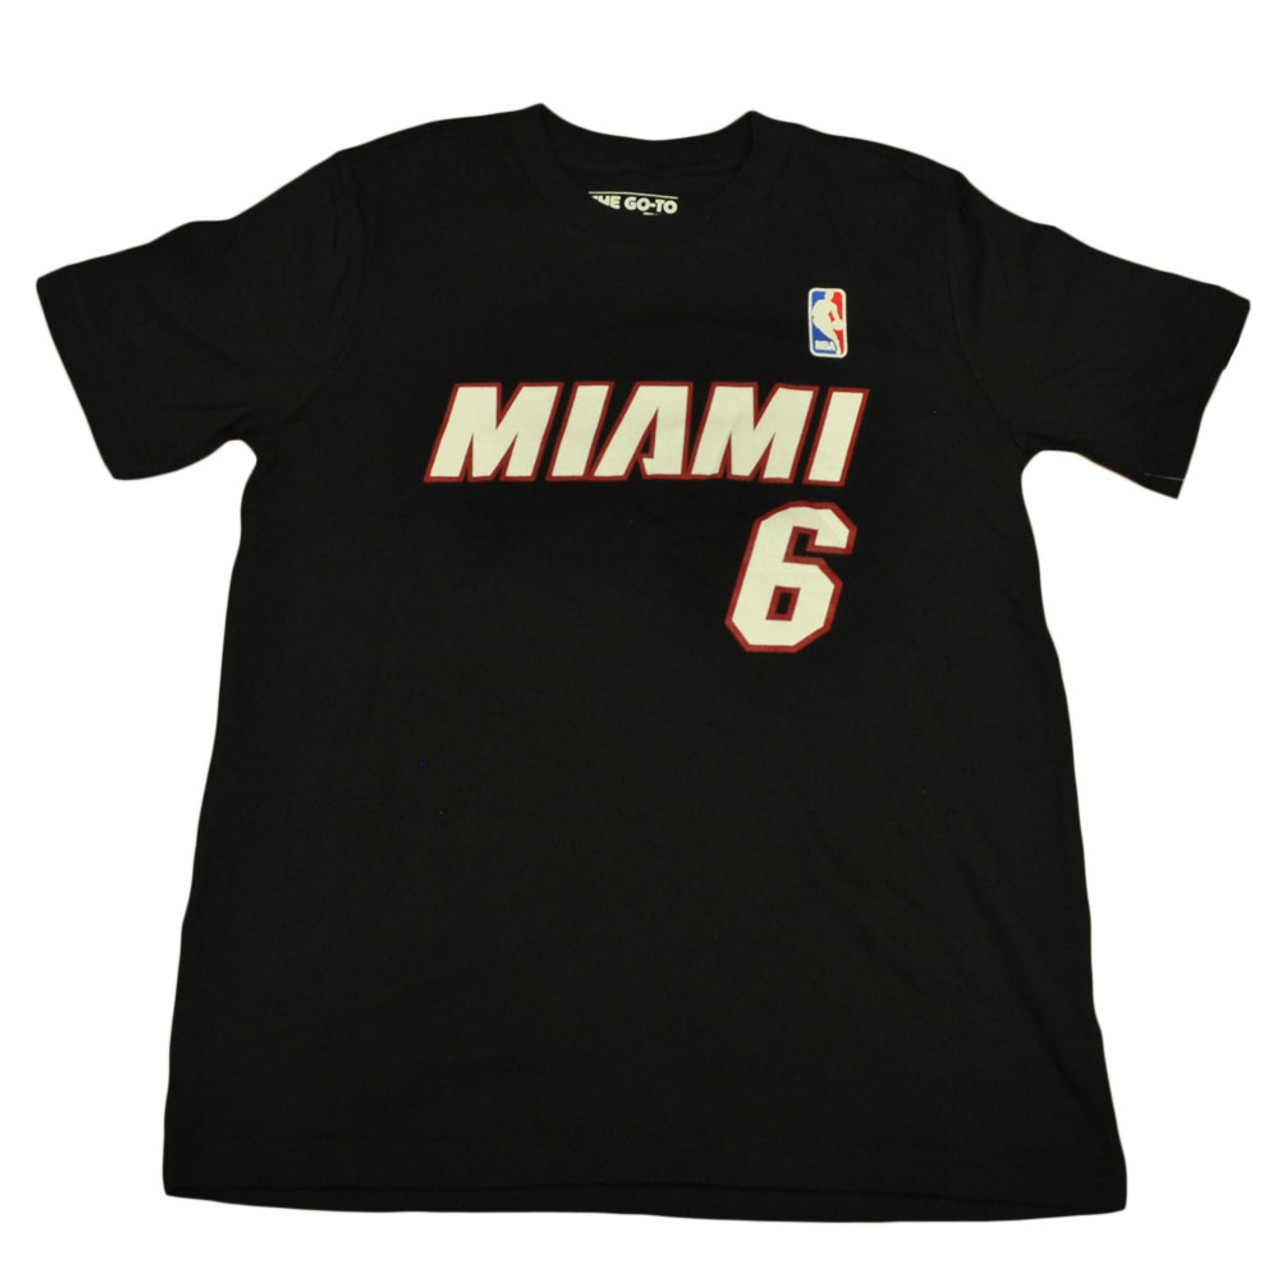 3a46184c72e Adidas NBA Miami Heat Youth Name And Number Lebron James Tshirt Tee Medium  10 12 - Sinbad Sports Store